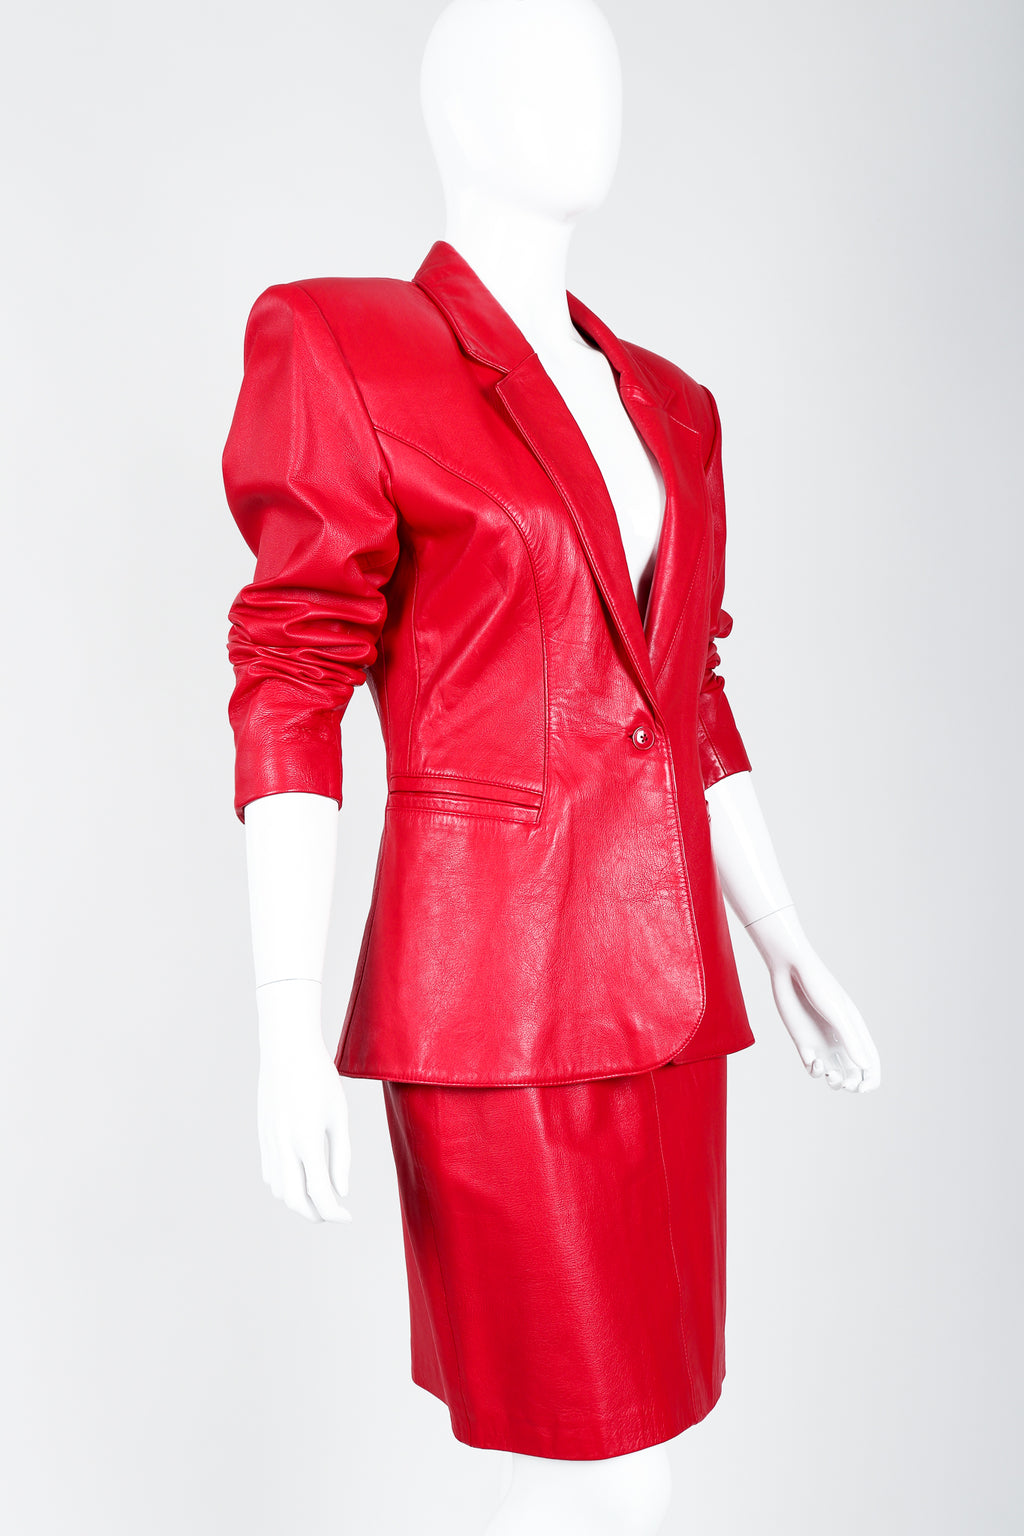 Vintage North Beach Leather by Michael Hoban Red Leather Jacket & Skirt Suit on Mannequin cropped